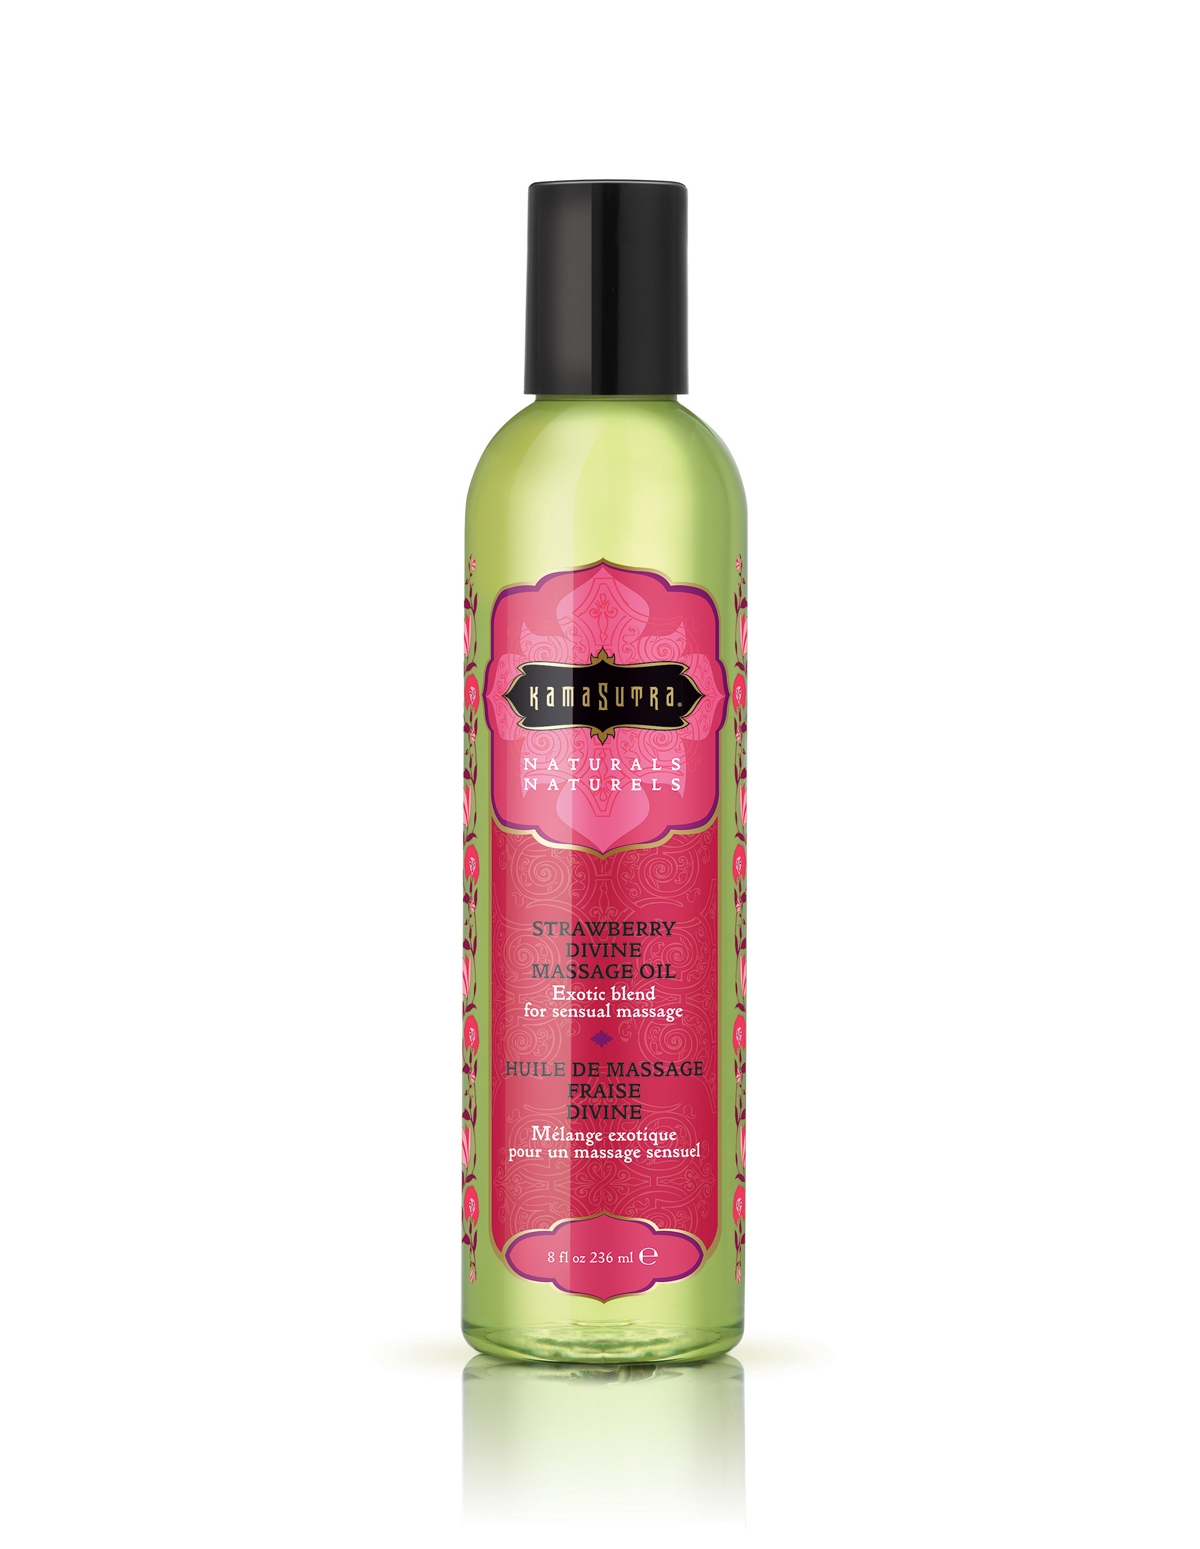 Strawberry Divine Massage Oil